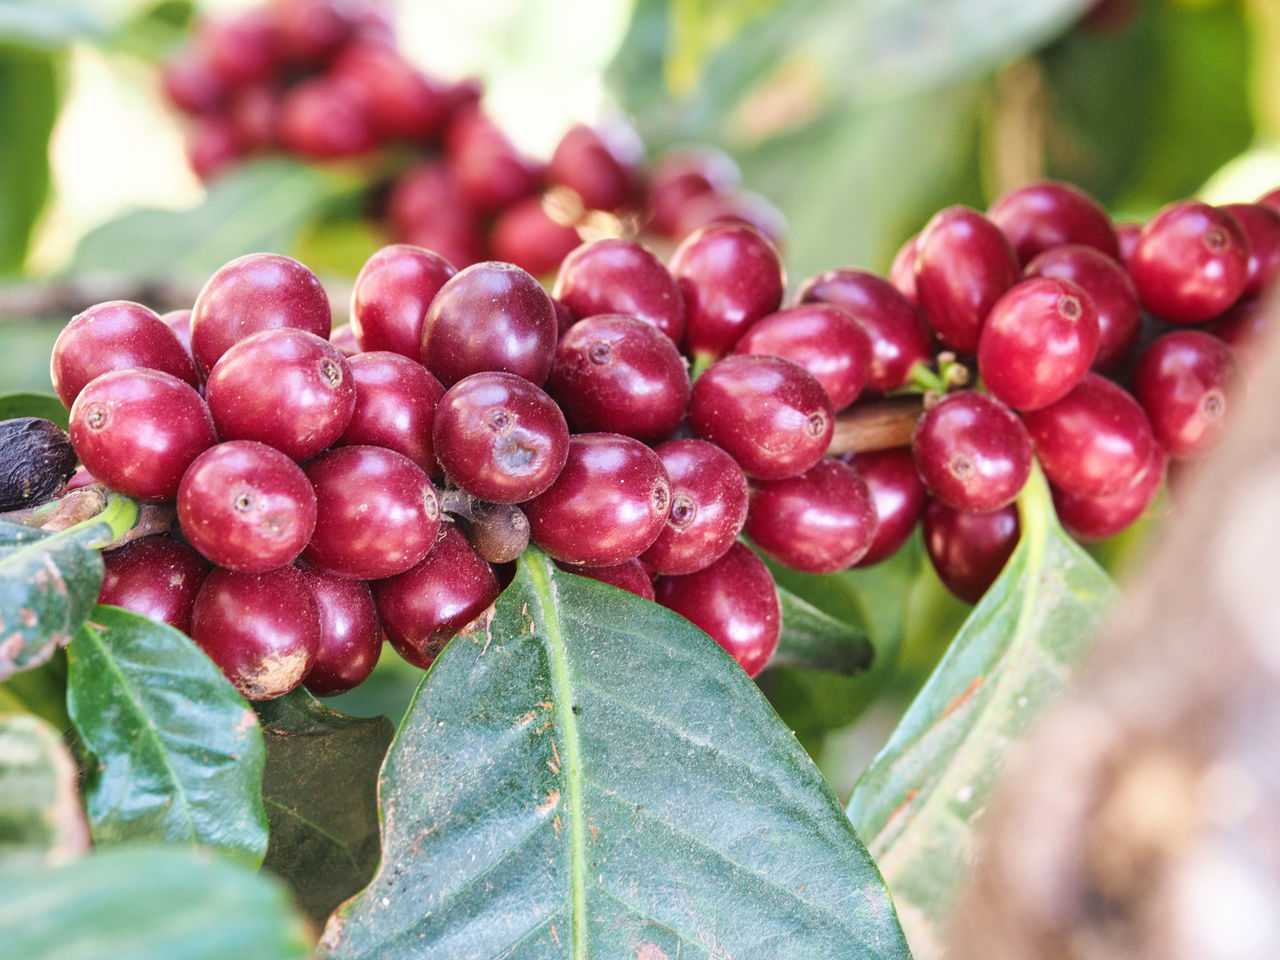 The making of coffee: Growing the plant Atitlan Lake Cherries City Close-up Coffee Coffee Beans Coffee Cherries Coffee Plantation Day Fair Trade Farm Focus On Foreground Food Freshness Freshness Green Color Growth Healthy Eating Leaf Nature No People Organic Outdoors Red Travel Photography